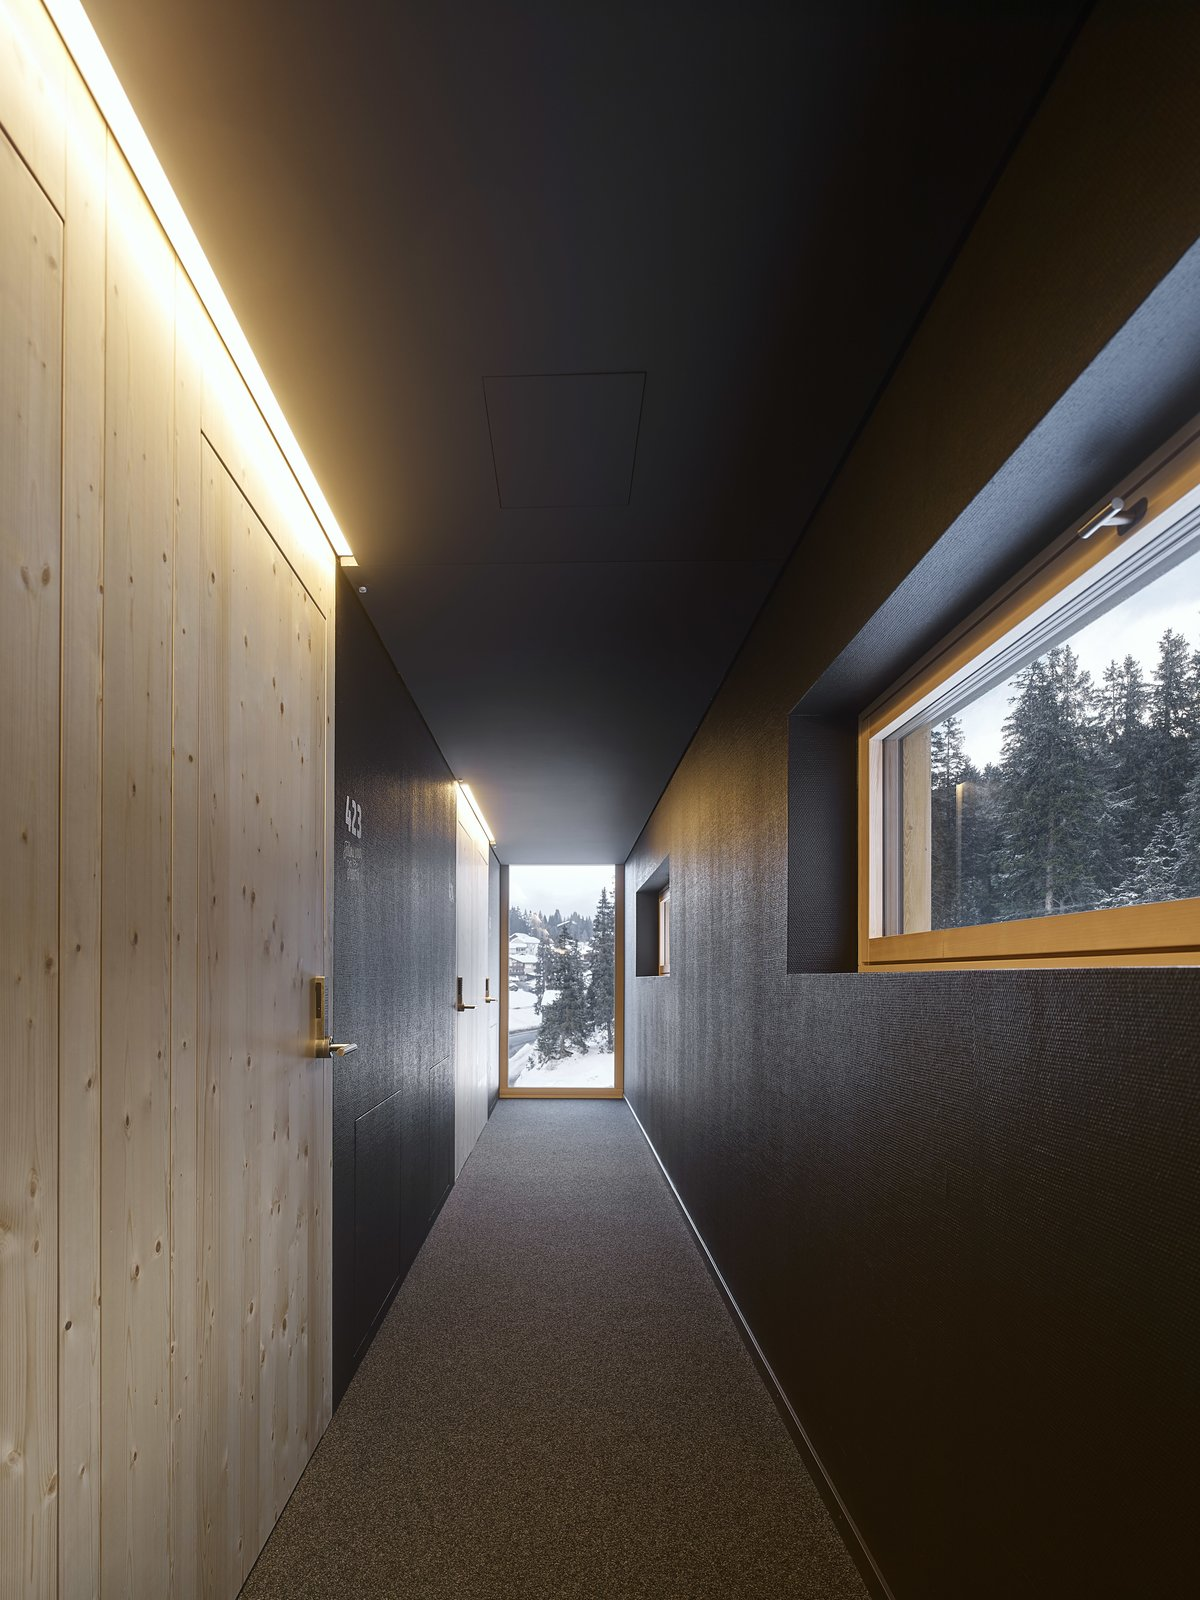 A long corridor provides access to the individual rooms.